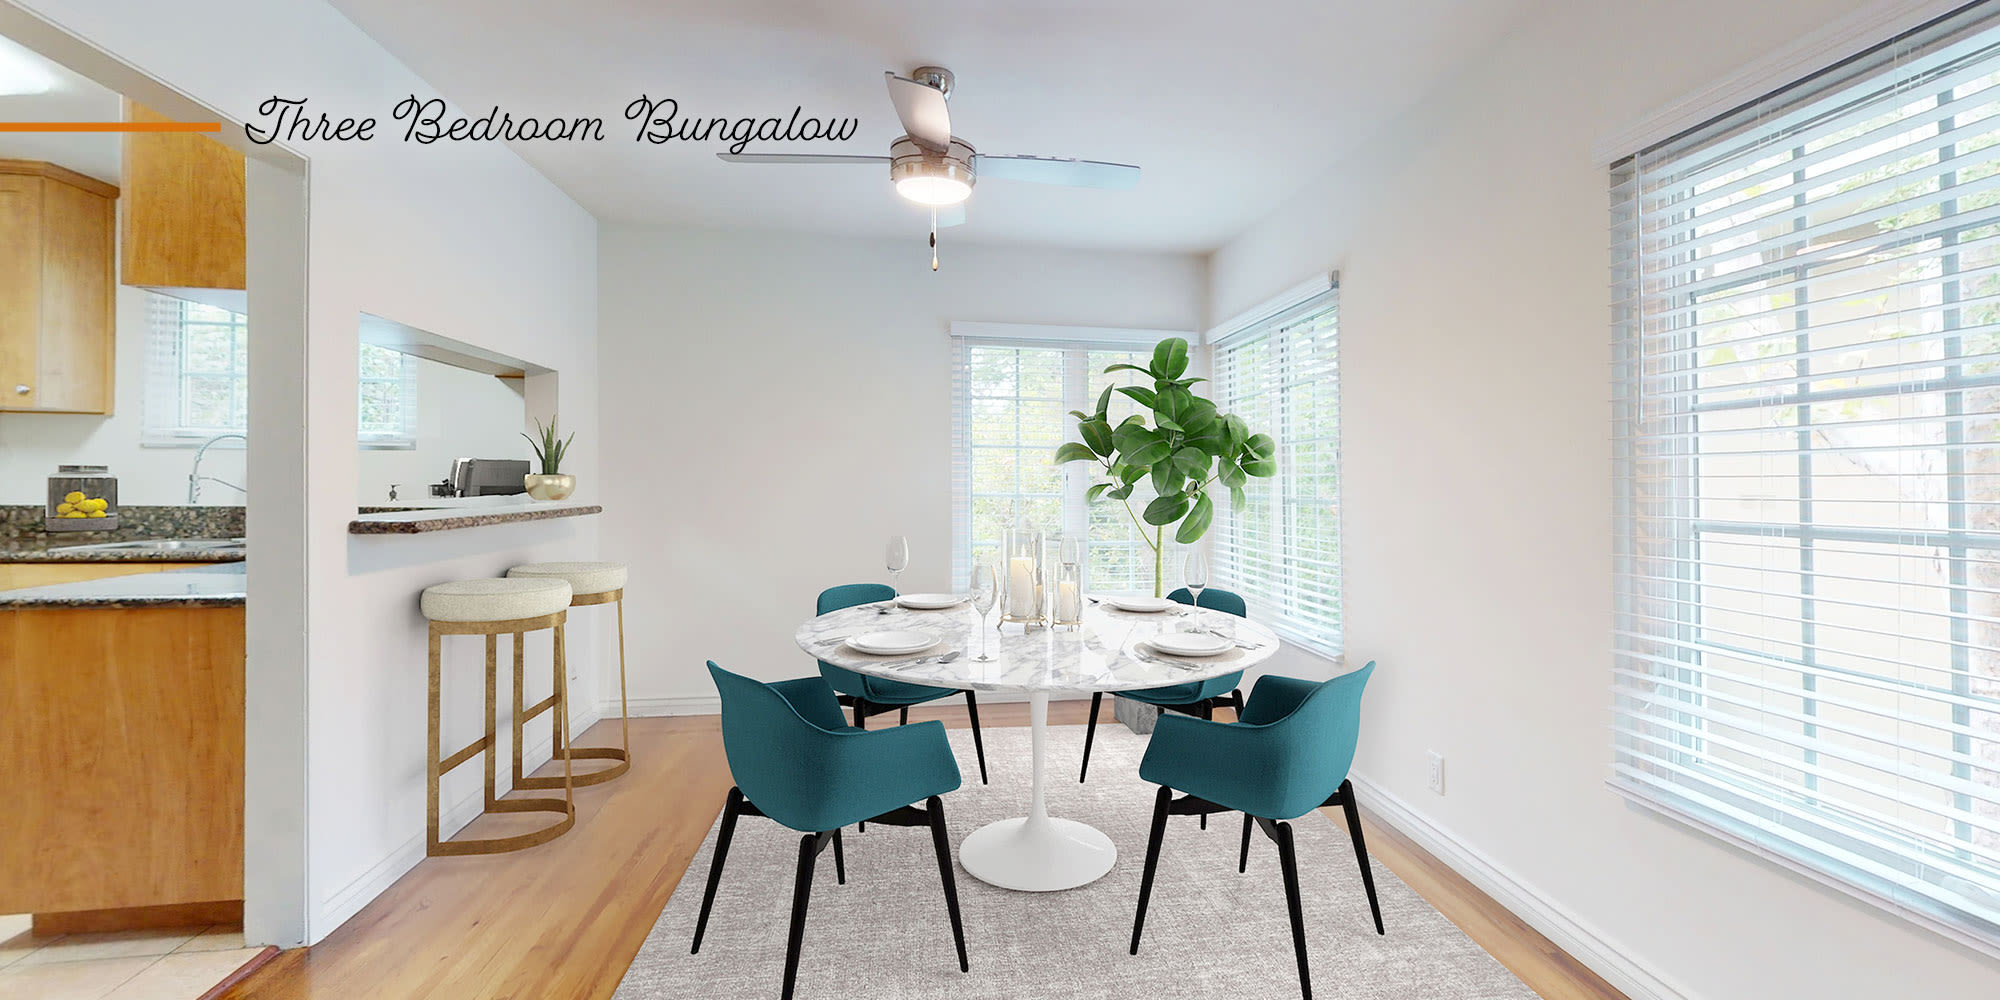 Spacious dining room with hardwood floors in a bungalow-style apartment at Sunset Barrington Gardens in Los Angeles, California